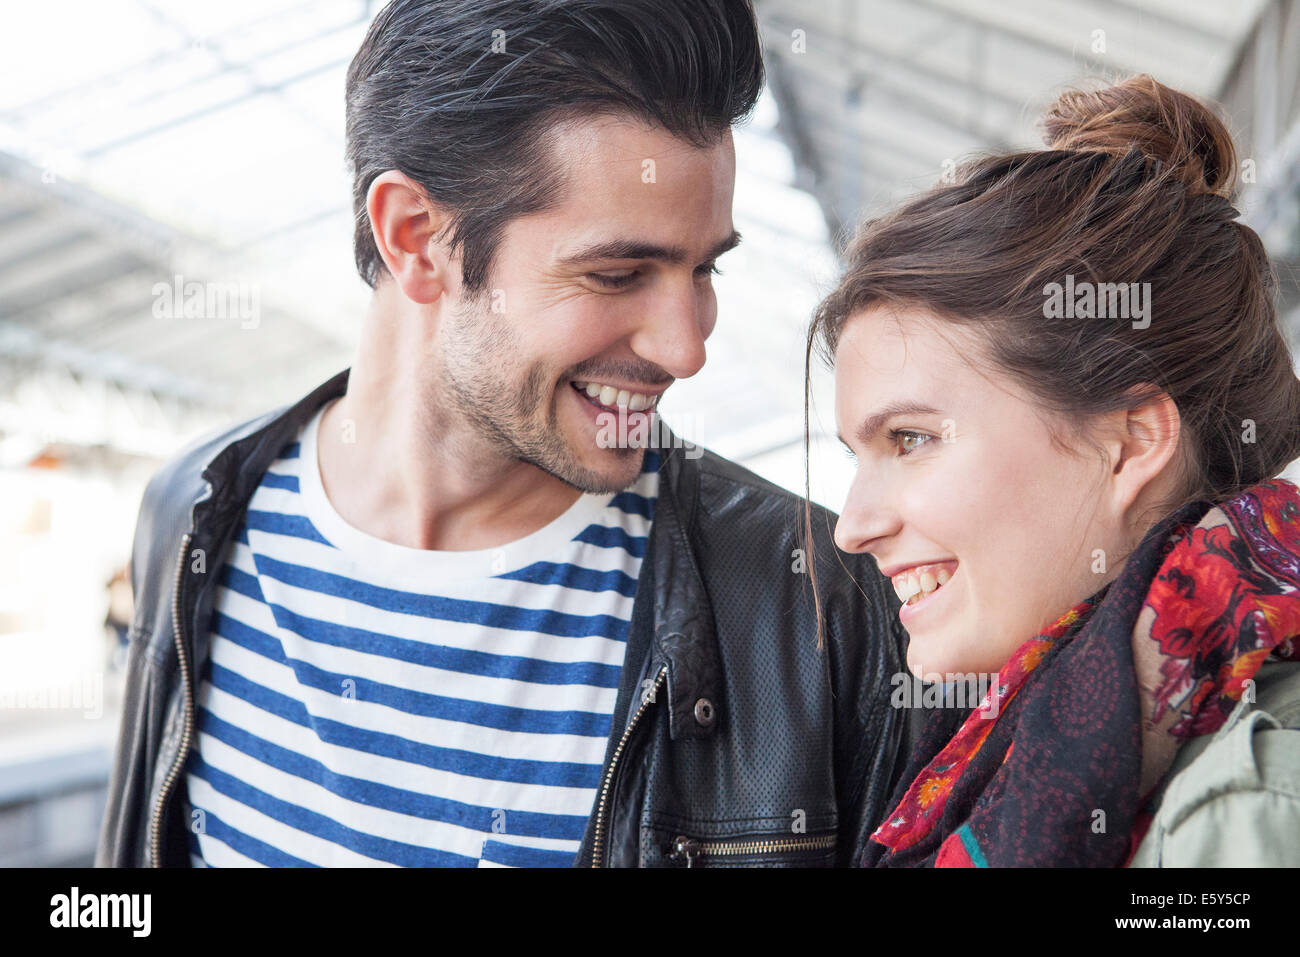 Young couple together on train platform - Stock Image